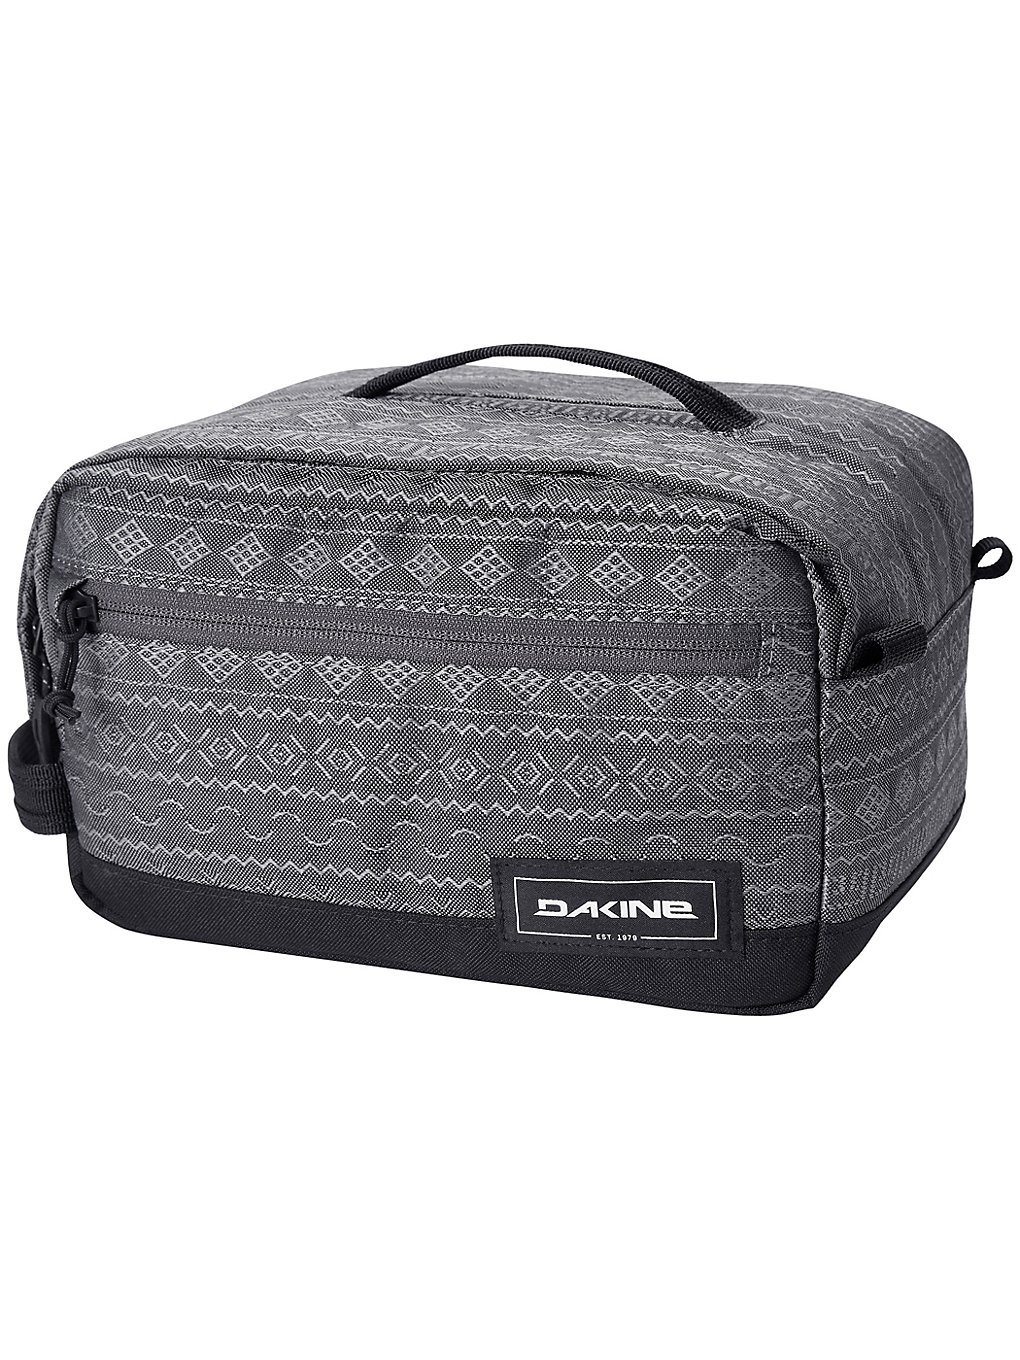 Image of Dakine Groomer L Bag grigio